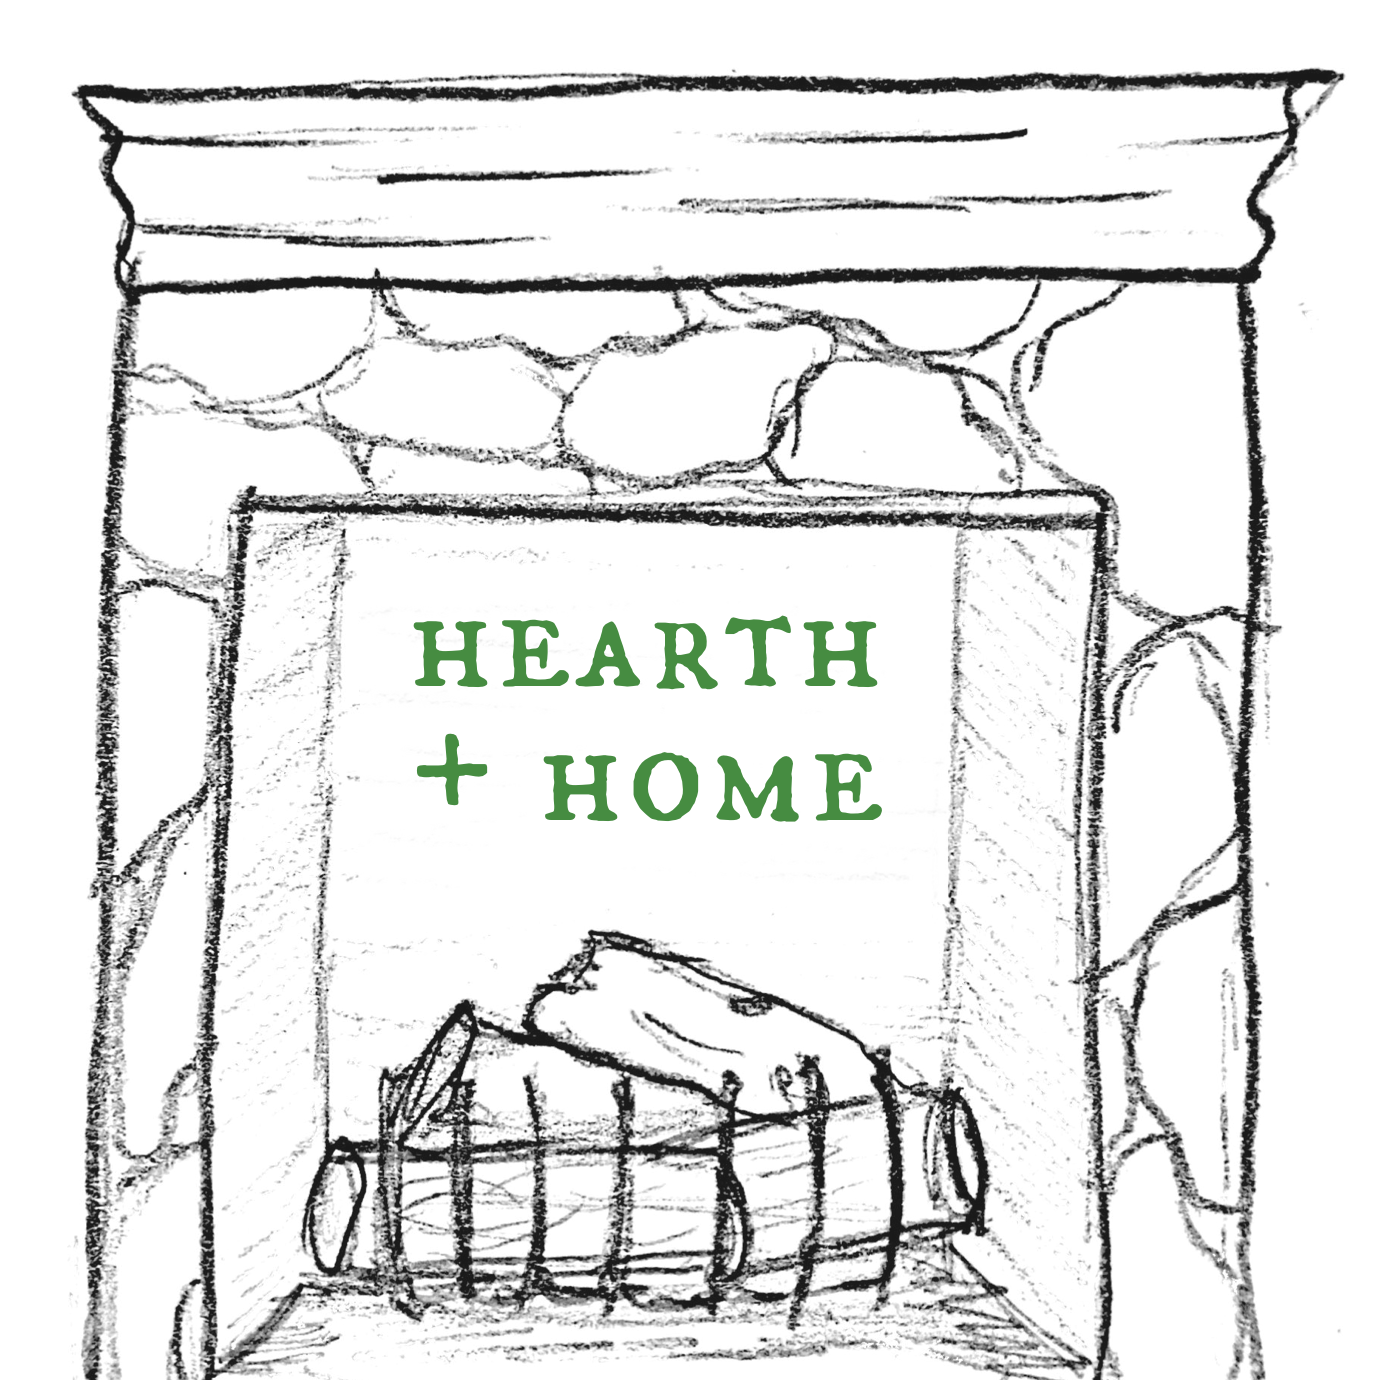 Hearth and home.png